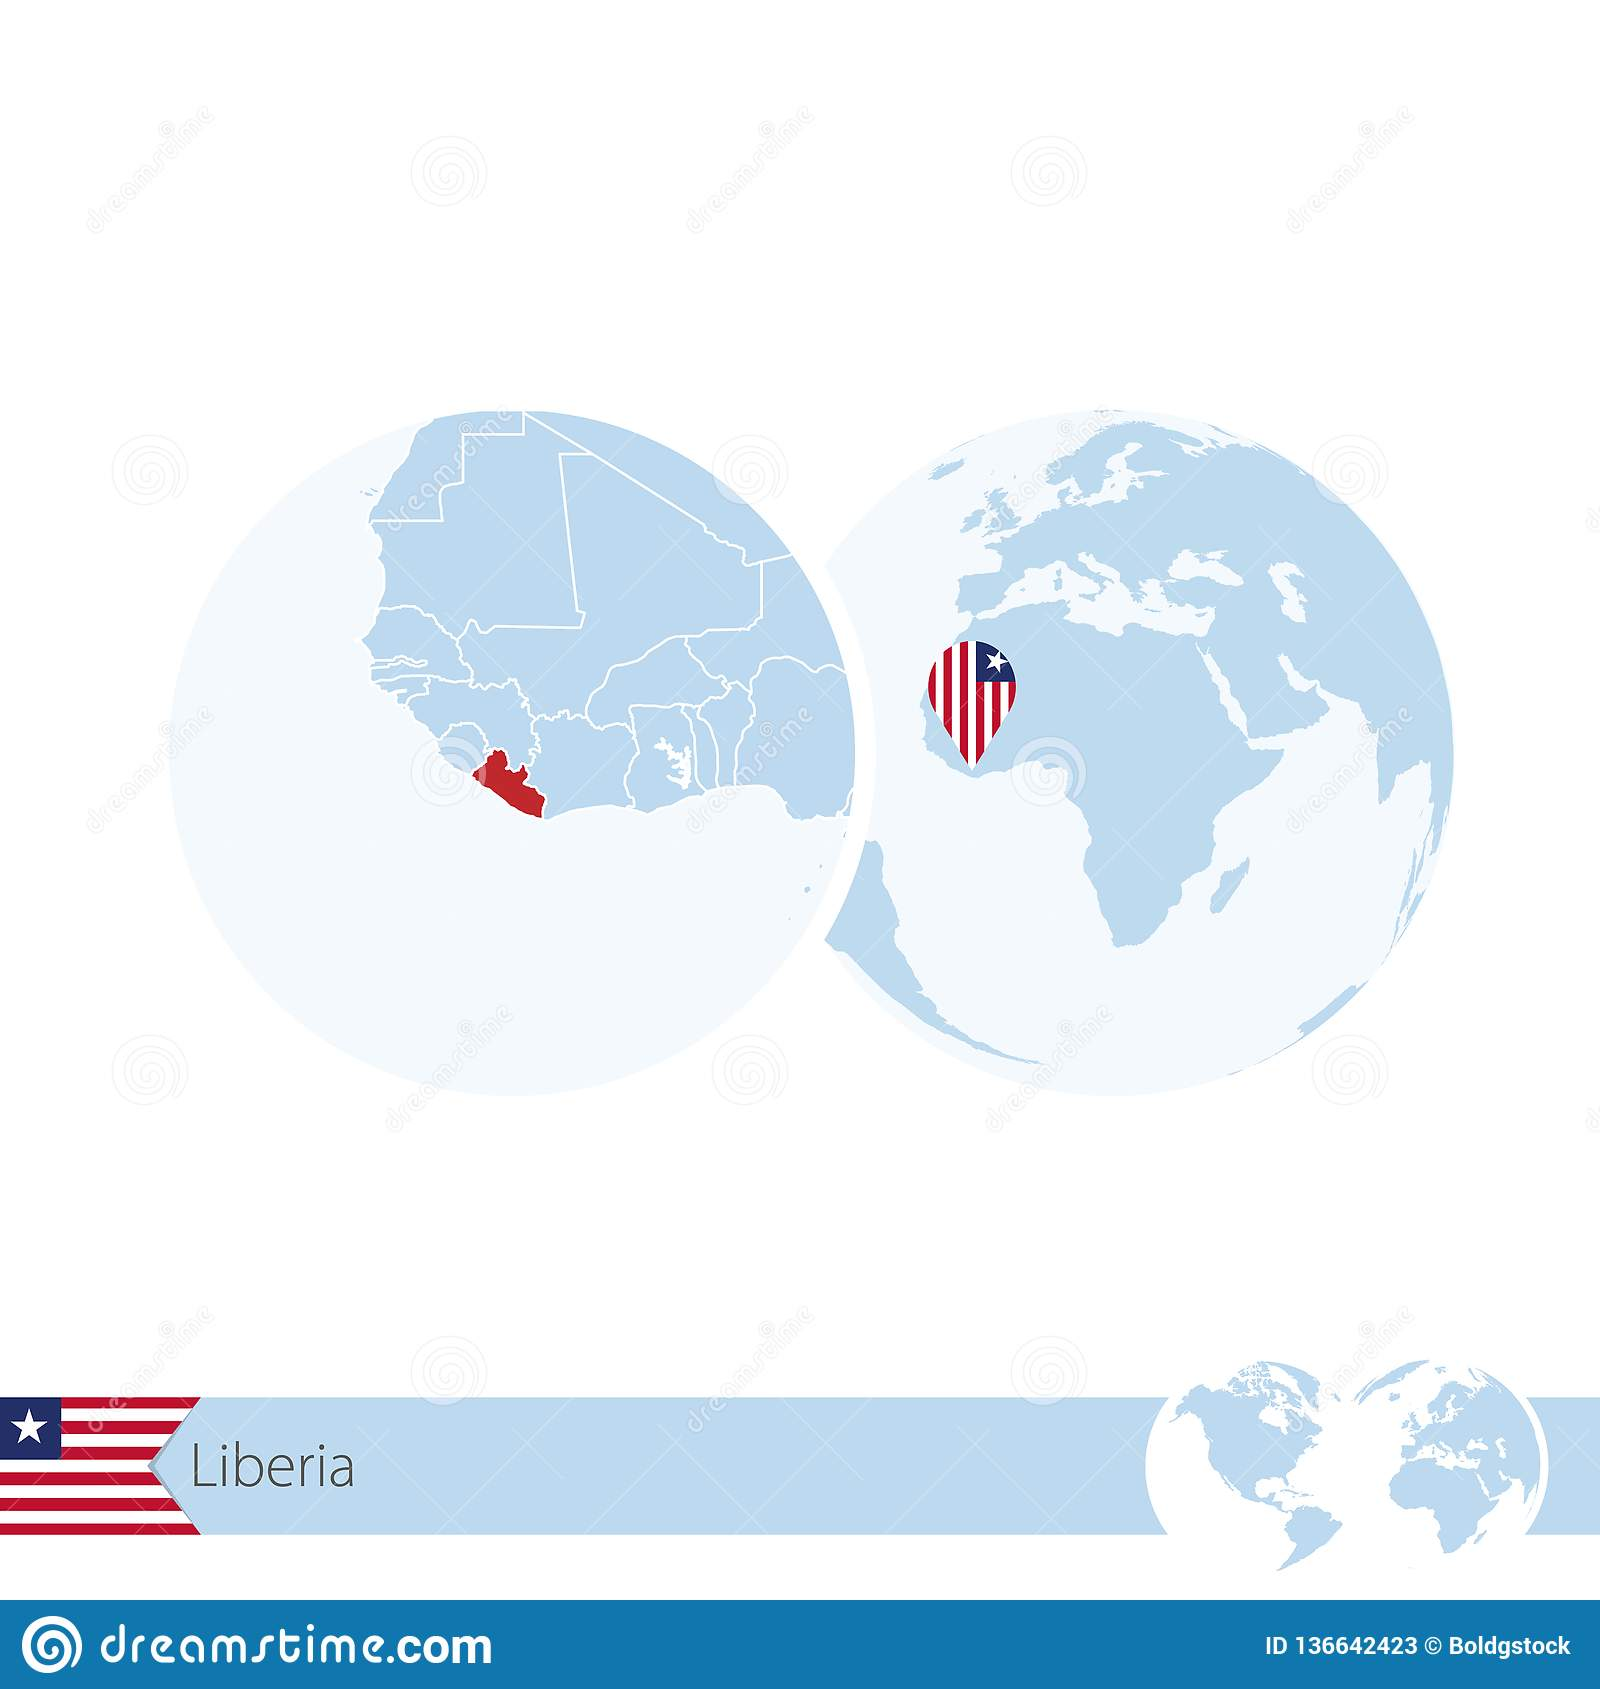 Liberia On World Globe With Flag And Regional Map Of Liberia Stock